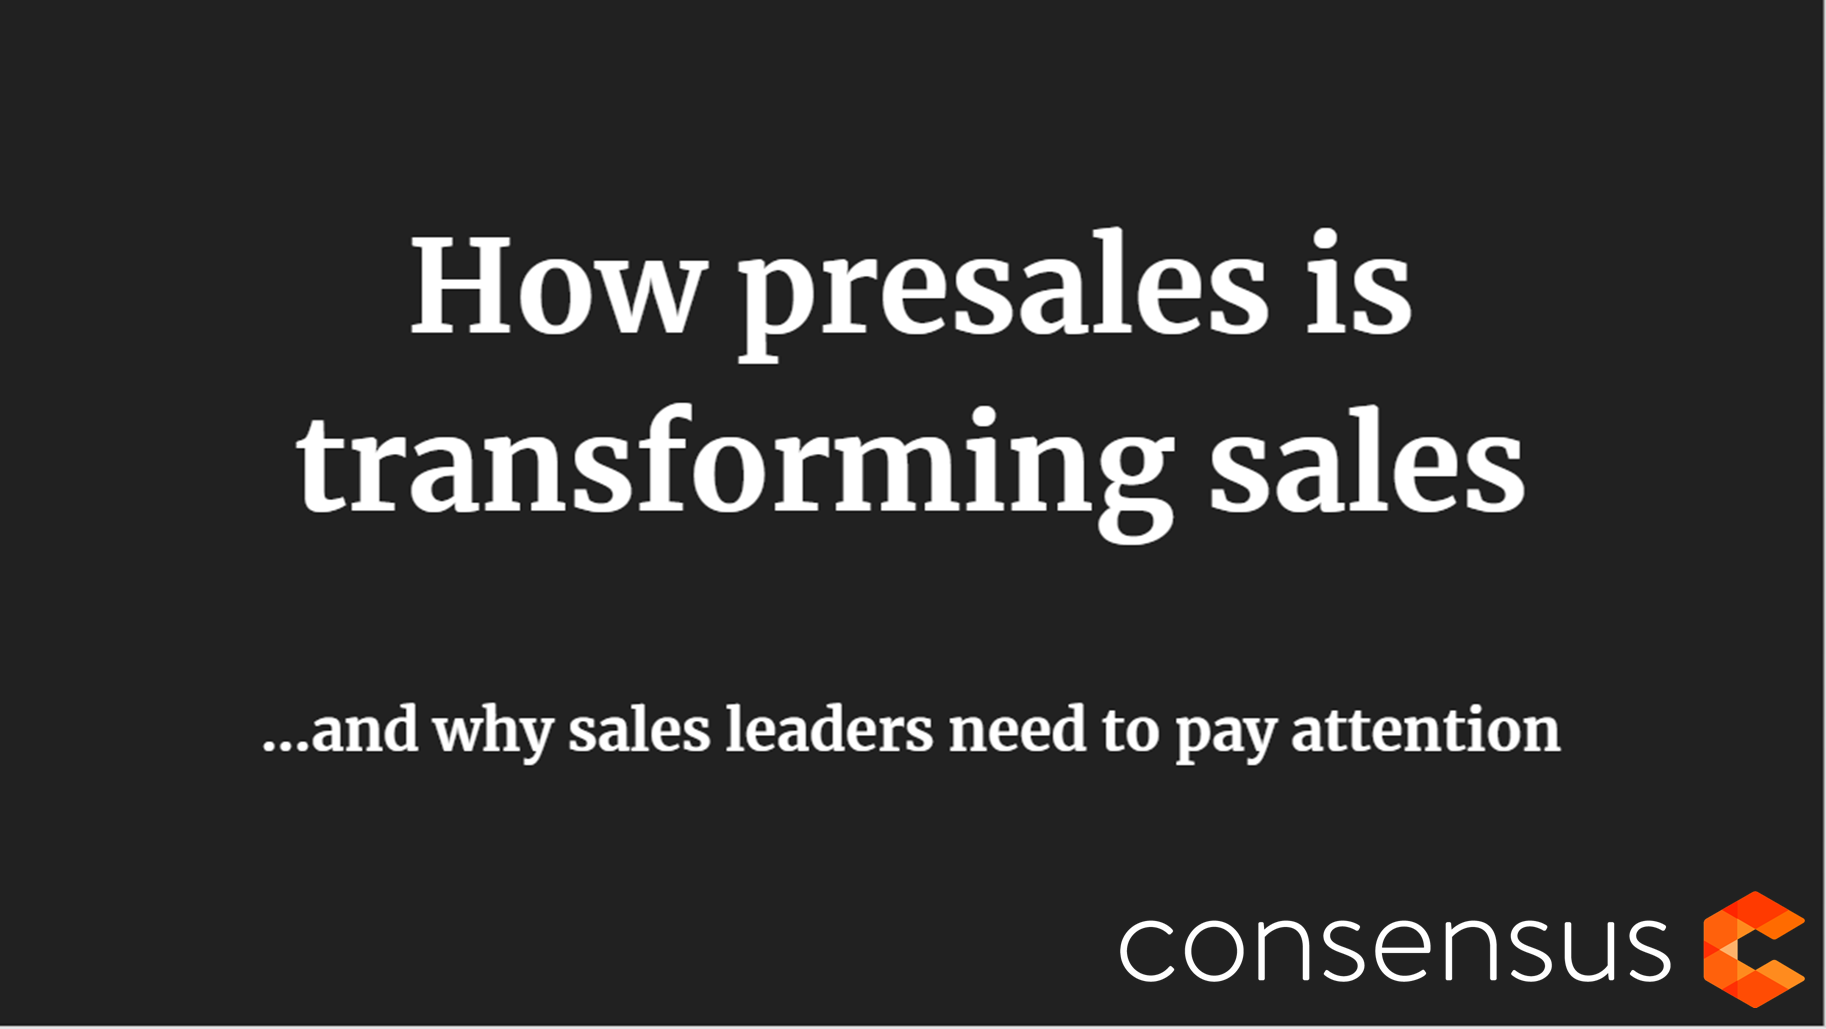 How presales is transforming sales ...and why sales leaders need to pay attention